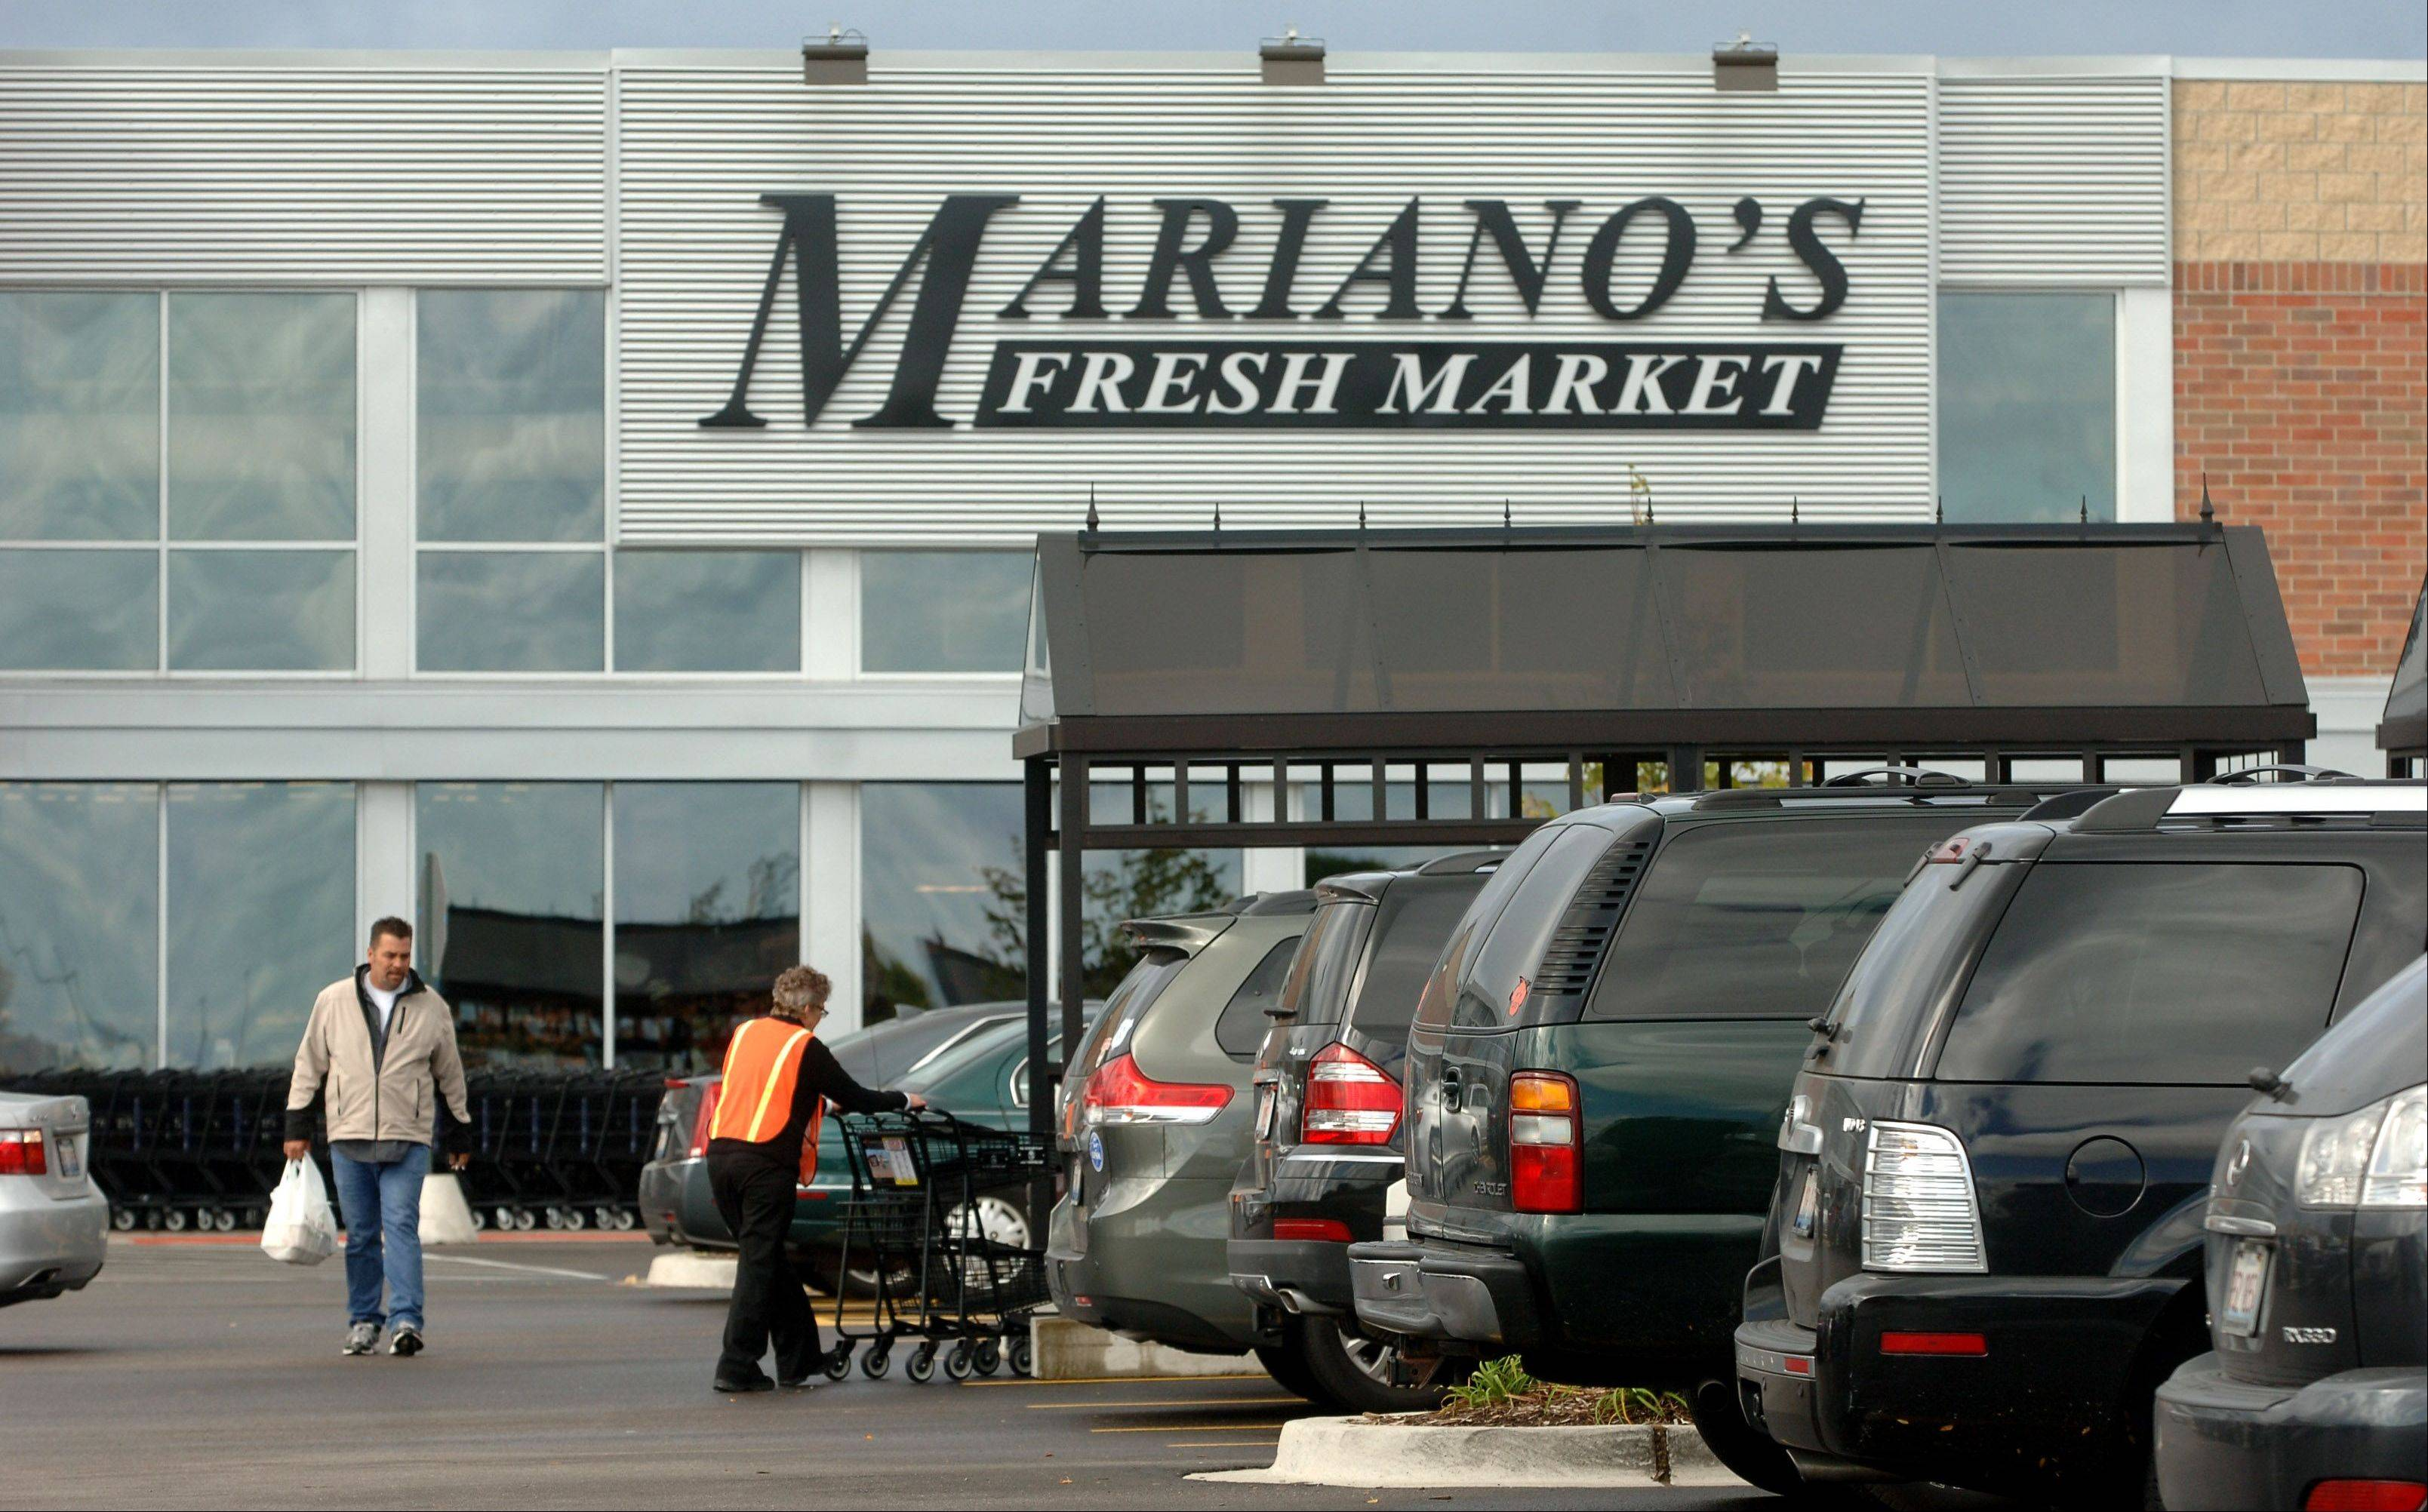 Mariano's Fresh Market in Vernon Hills has expanded its parking lot twice since opening in June 2011. That's one reason a developer intends create more parking than originally proposed for the Mariano's that would be built in Lake Zurich on the northwest corner of Route 22 and Quentin Road.